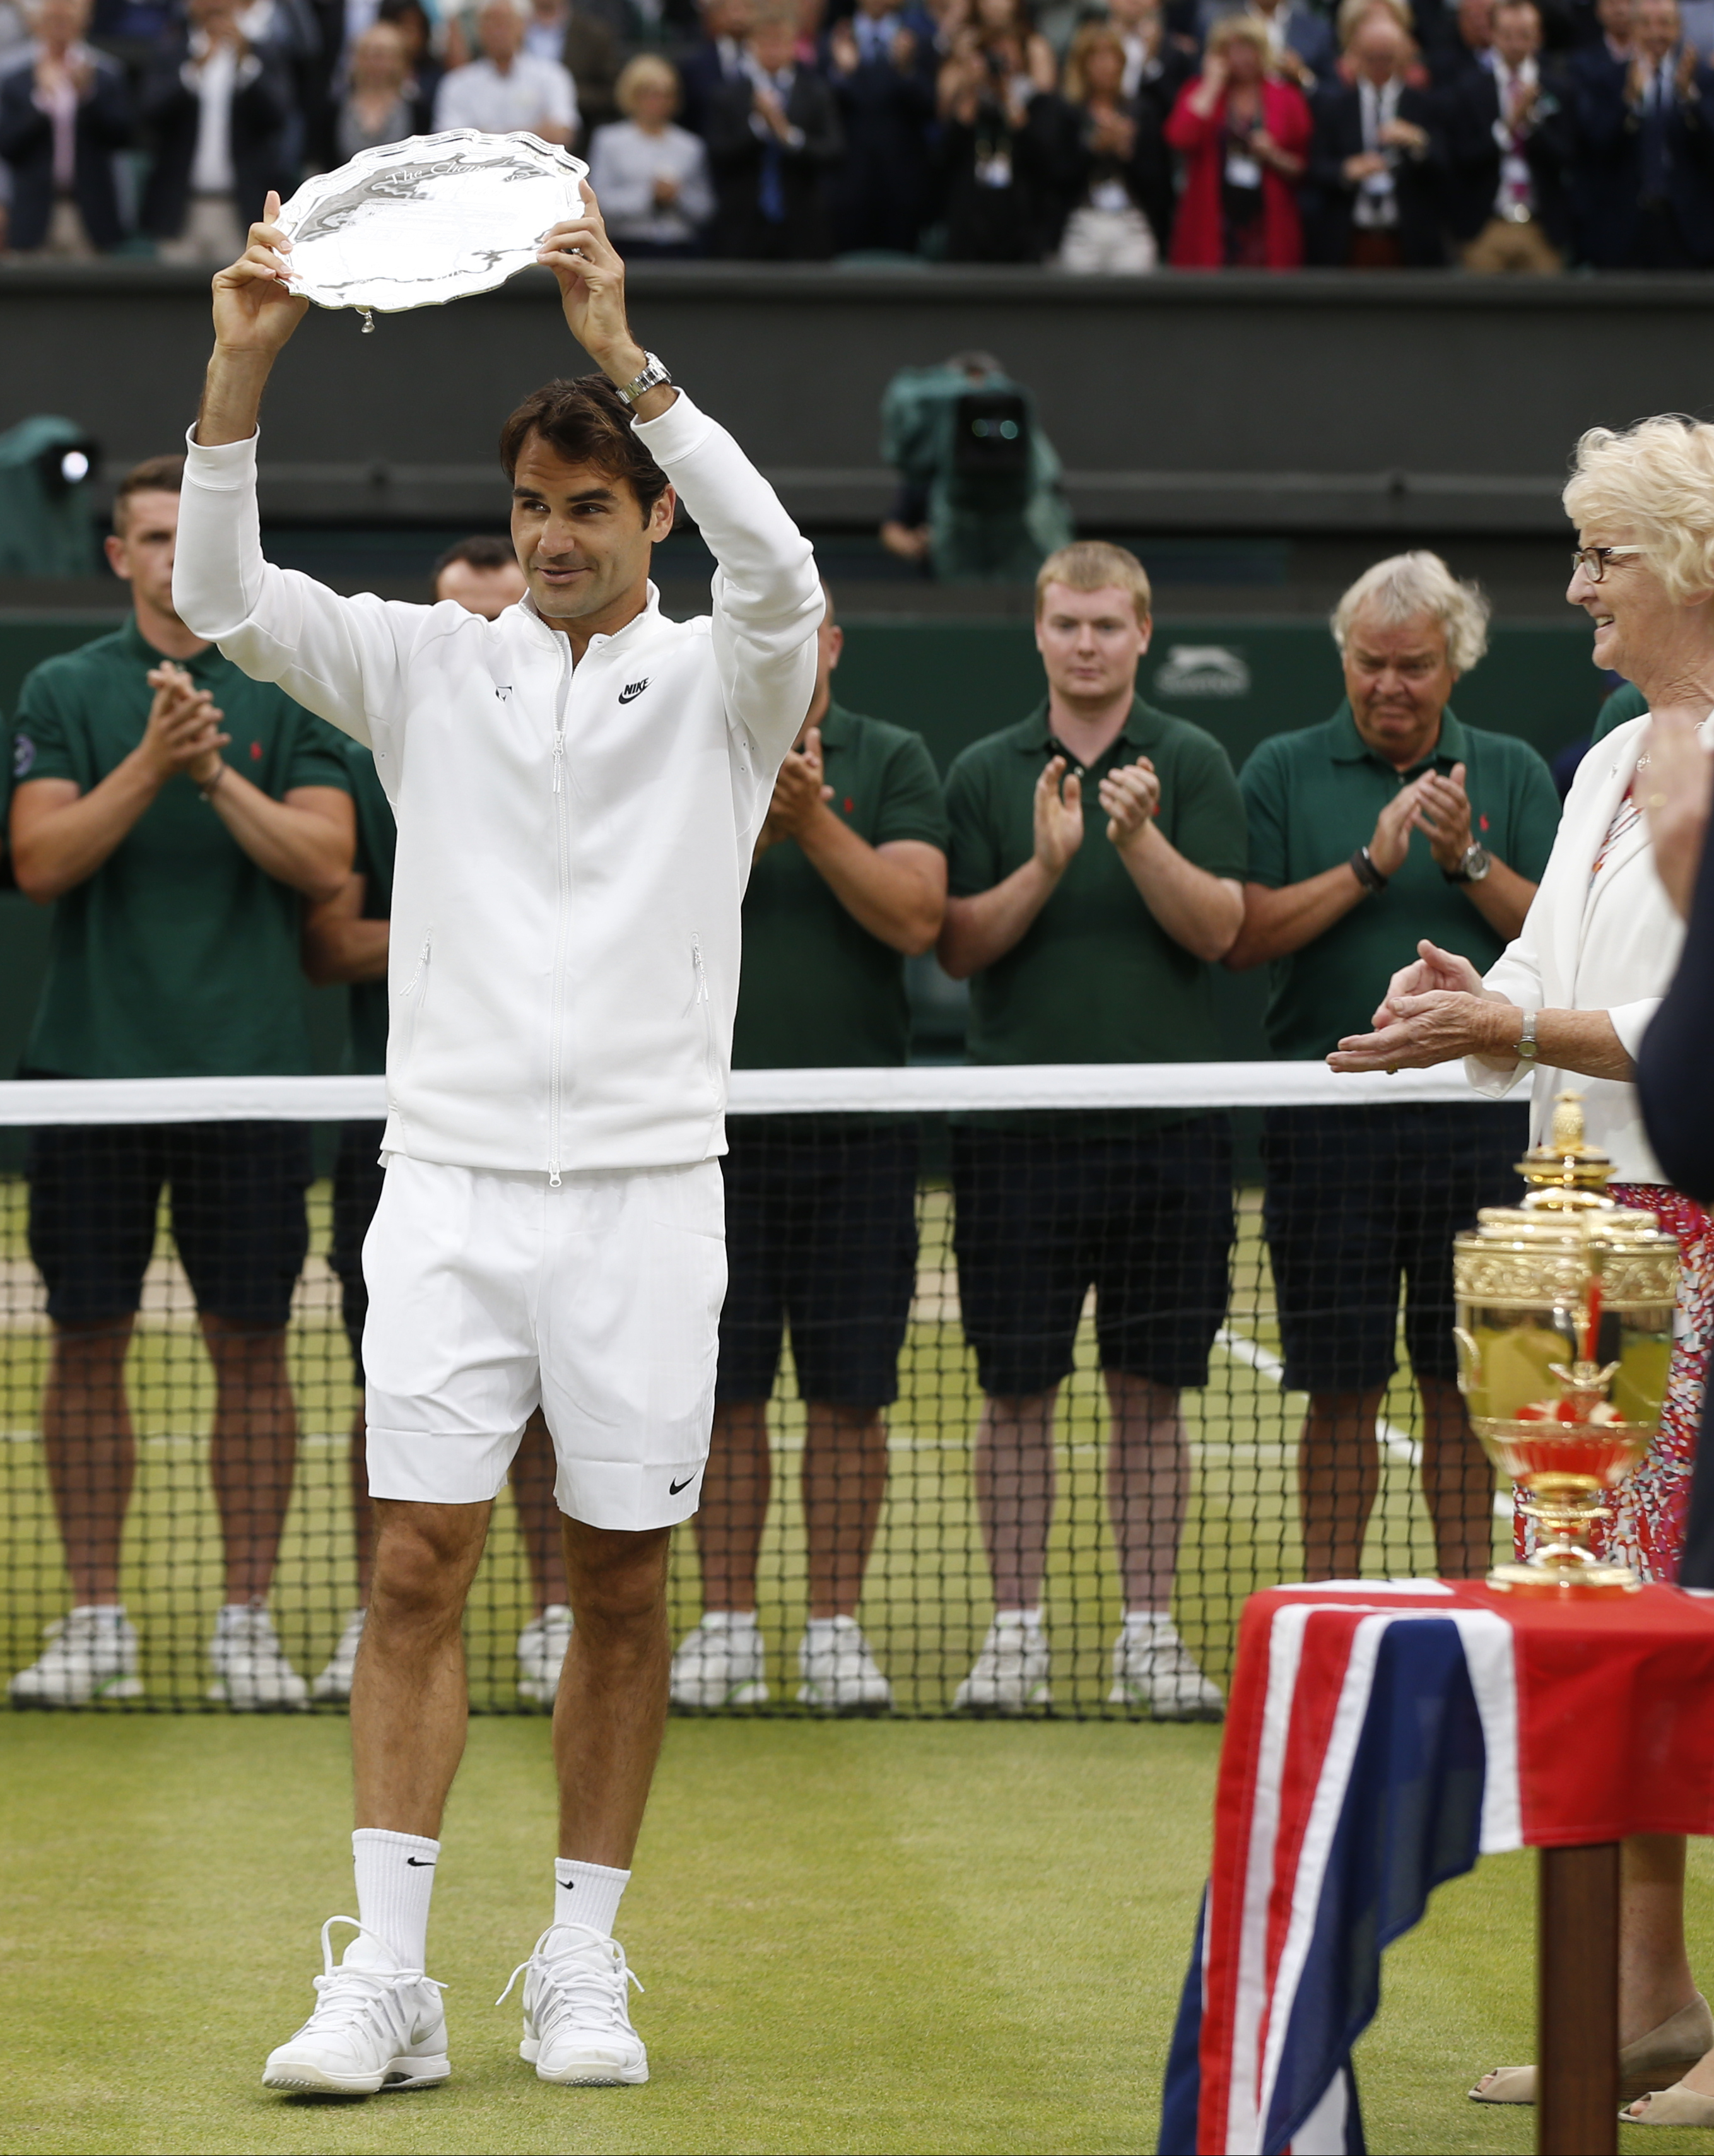 Roger Federer of Switzerland holds up the runner up trophy up after being defeated by Novak Djokovic of Serbia in the men's singles final at the All England Lawn Tennis Championships in Wimbledon, London, Sunday July 12, 2015. Djokovic won the match 7-6,